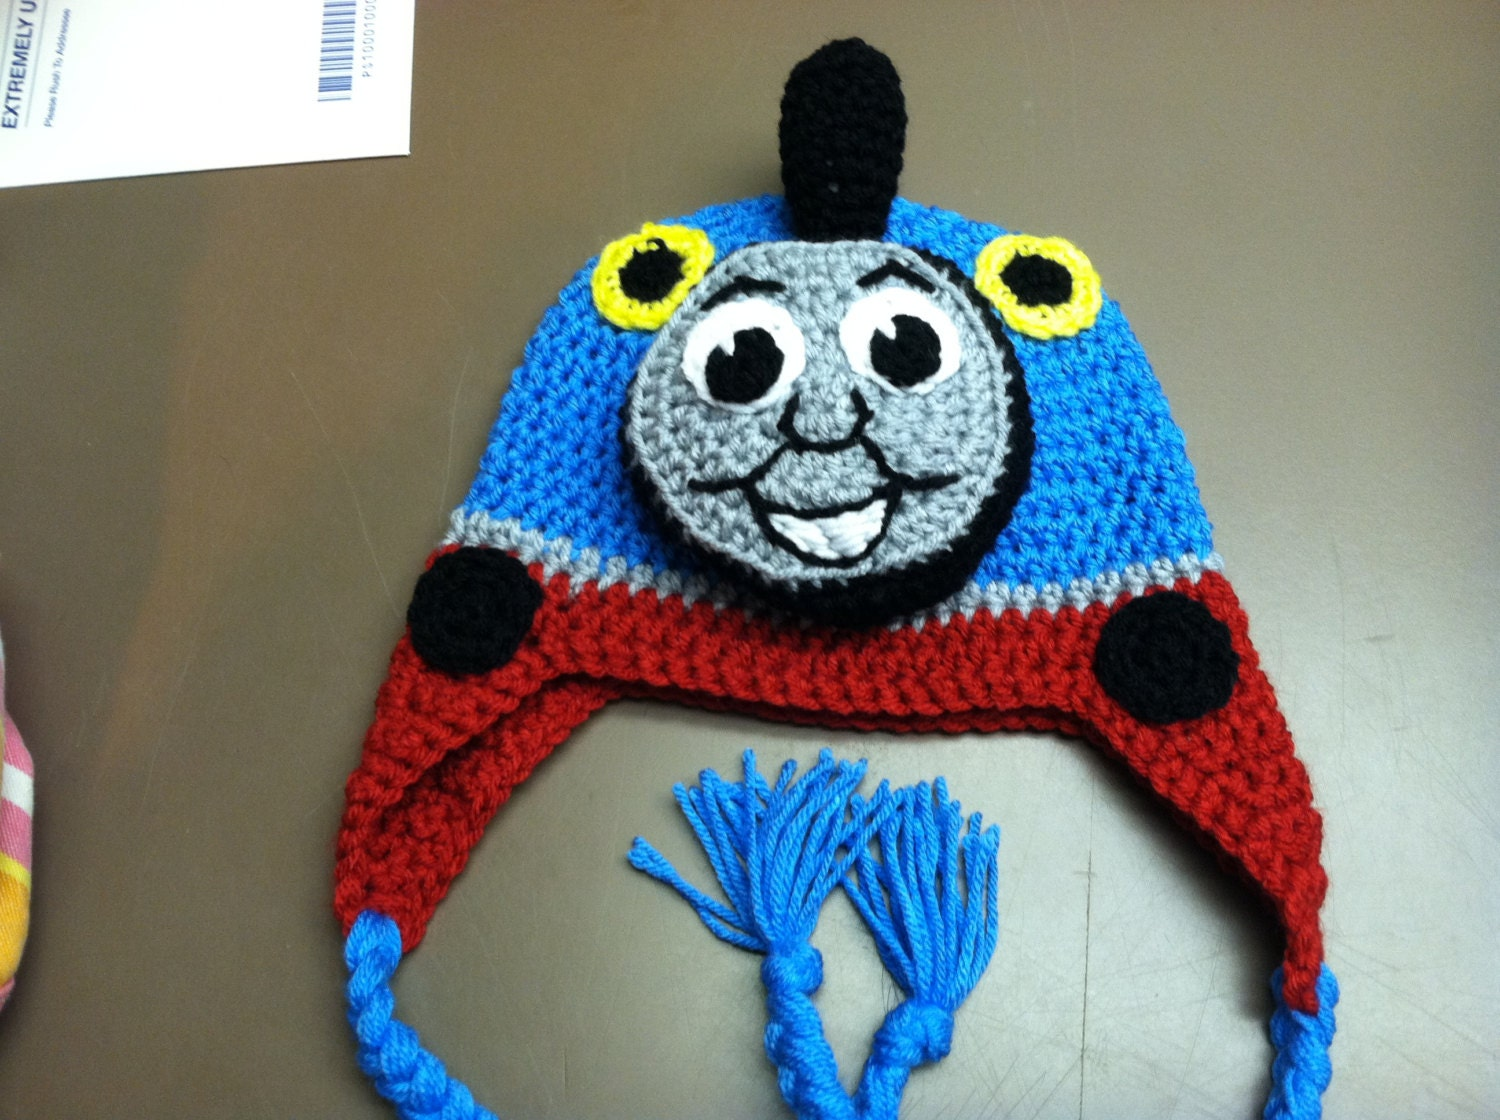 Free Crochet Hat Pattern For Thomas The Train : Thomas the Train Crochet Hat